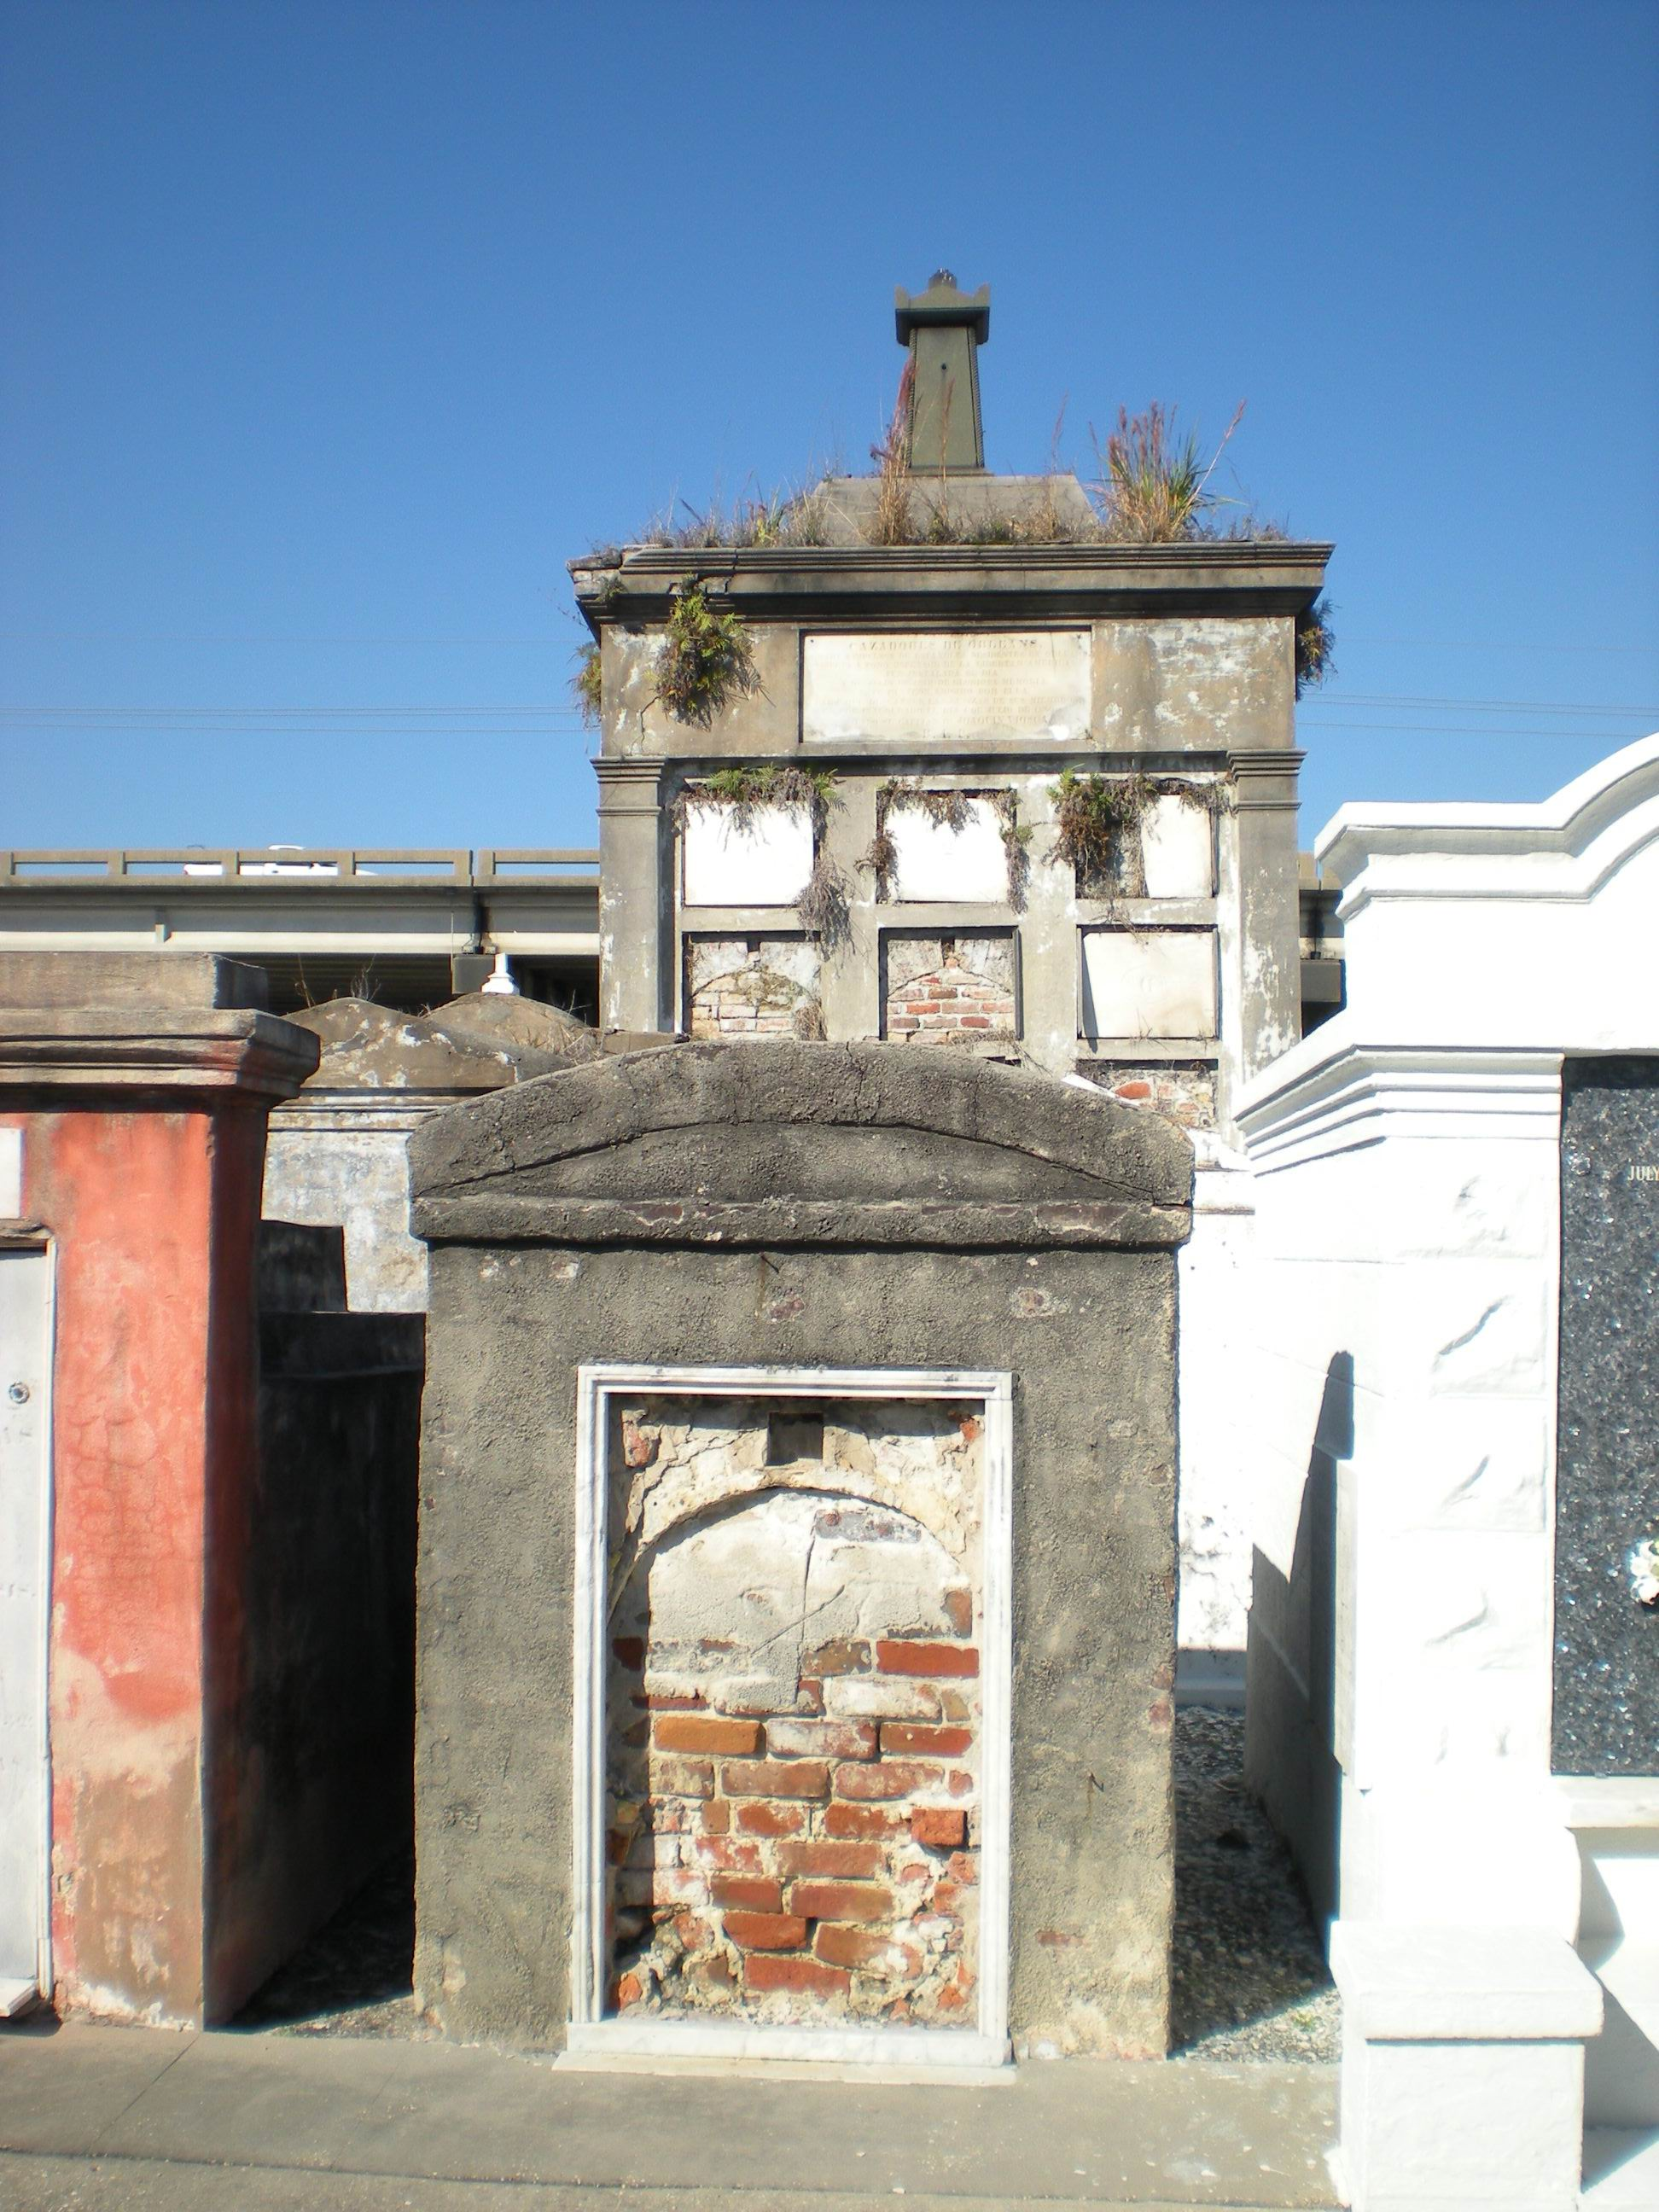 St. louis cemetery new orleans photo